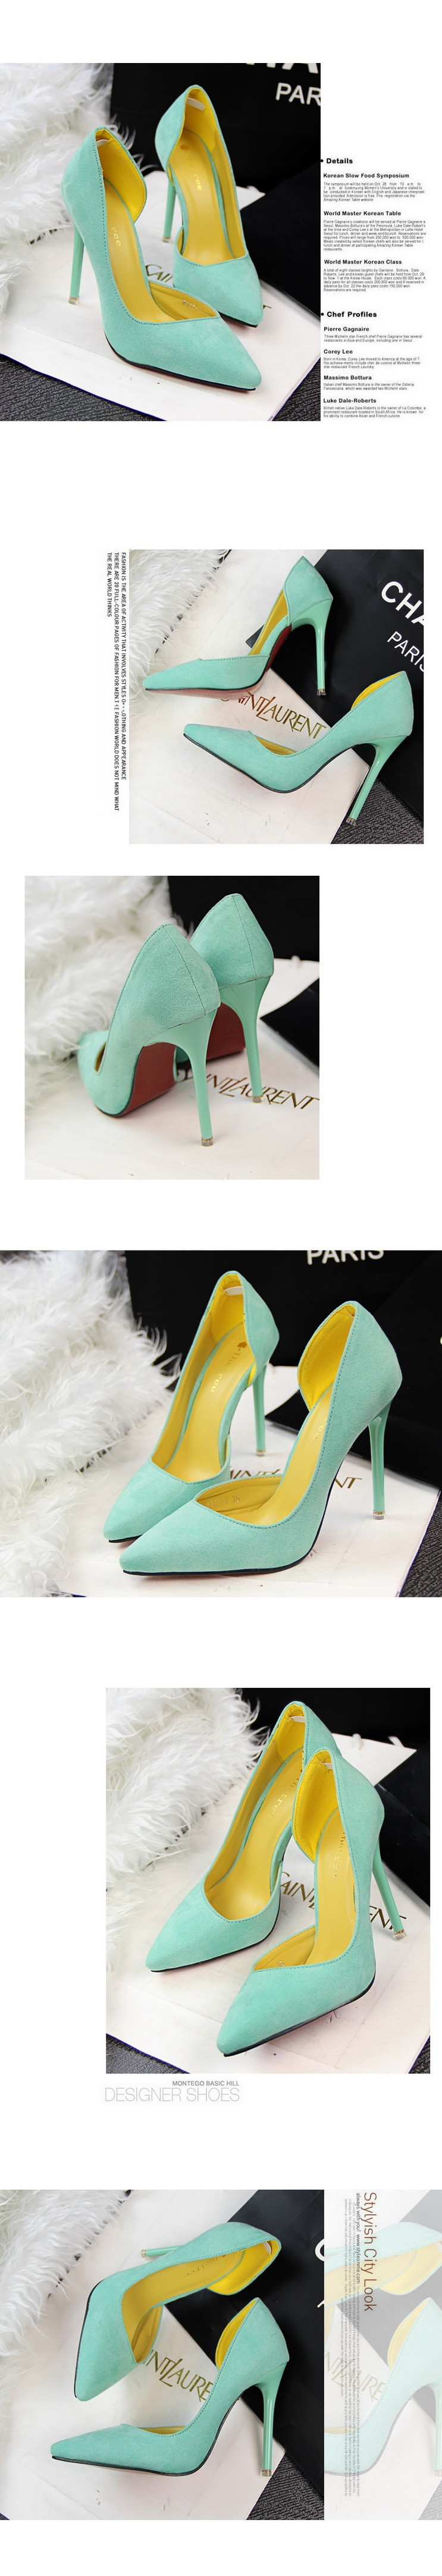 New Brand Fashion Women Flock Pumps Thin High Heel Pumps Shoes For Women Pointed Toe Sexy Party Wedding Woman Shoes ZX2.5